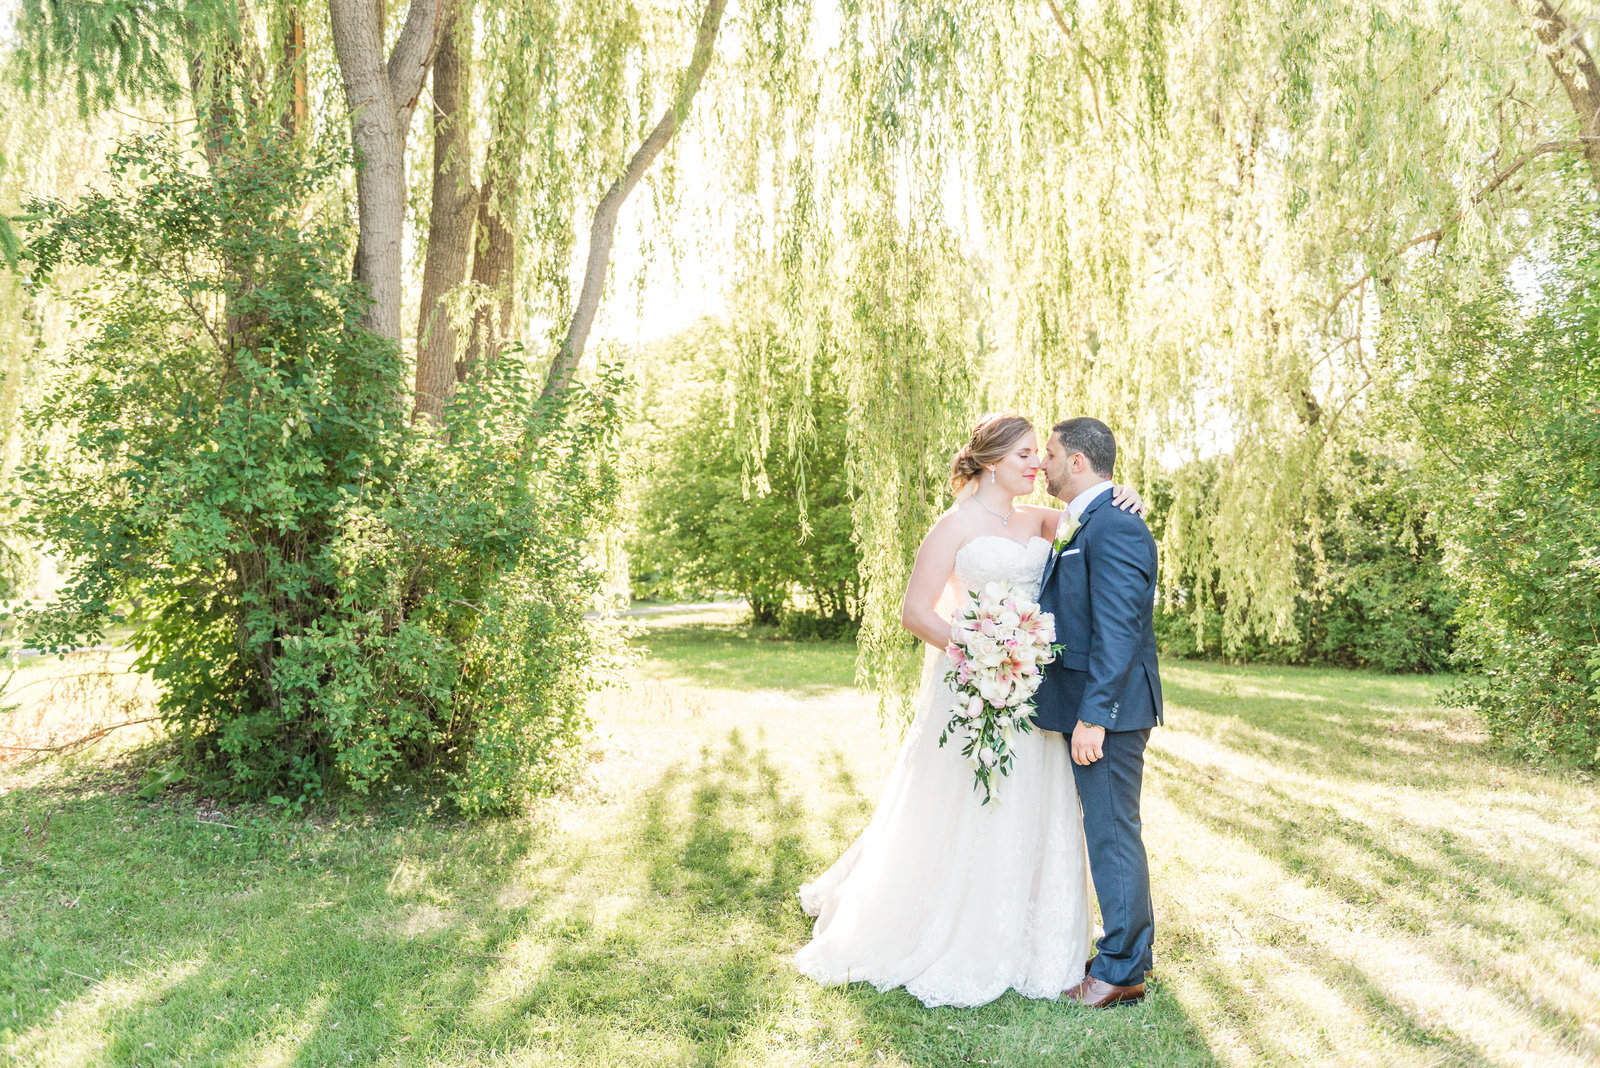 Ottawa wedding photos in willow tress